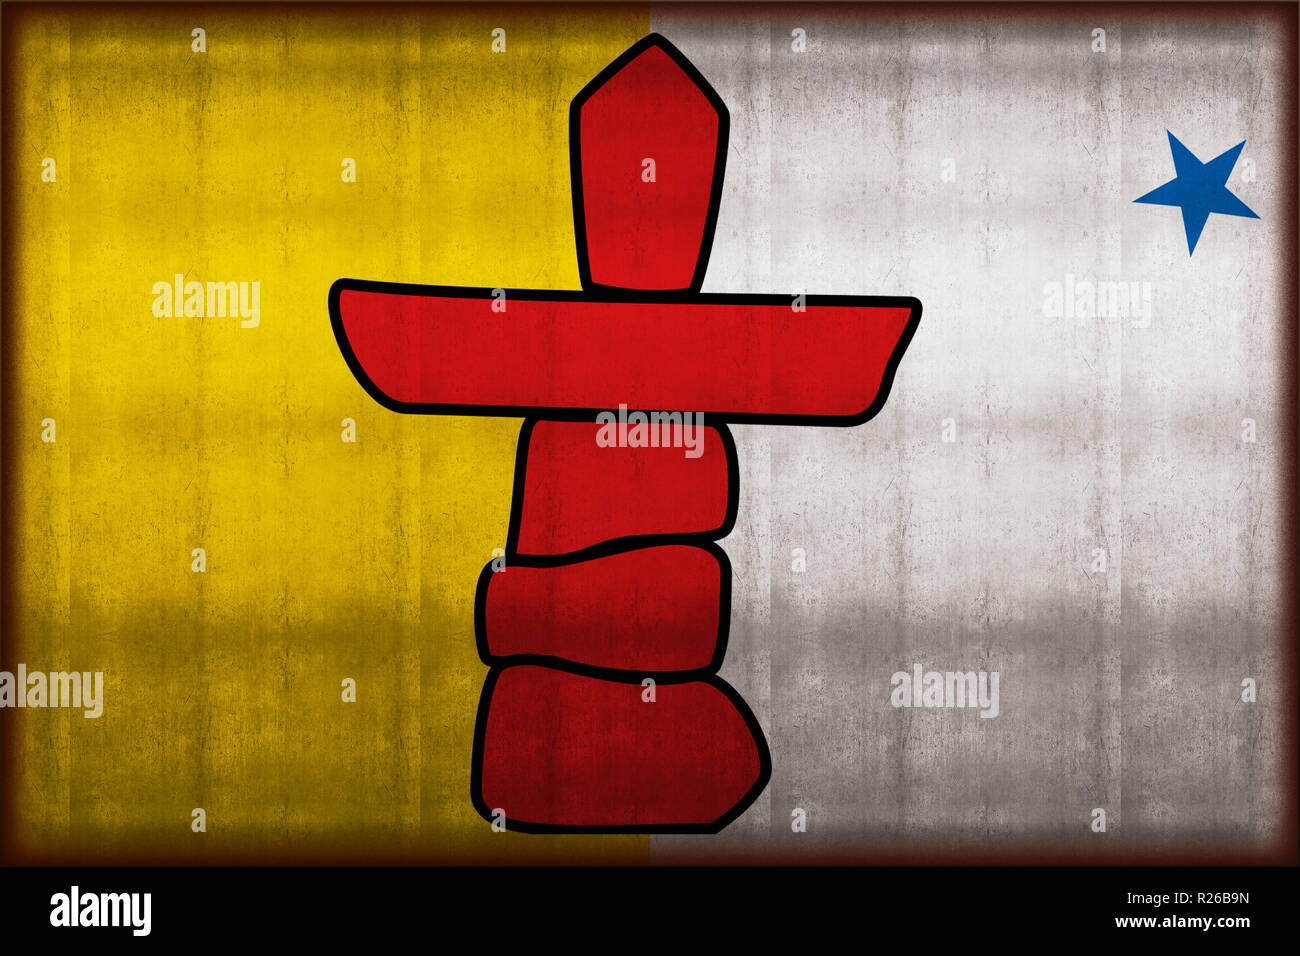 Nunavut rusty flag illustration. Usable for background and texture. - Stock Image